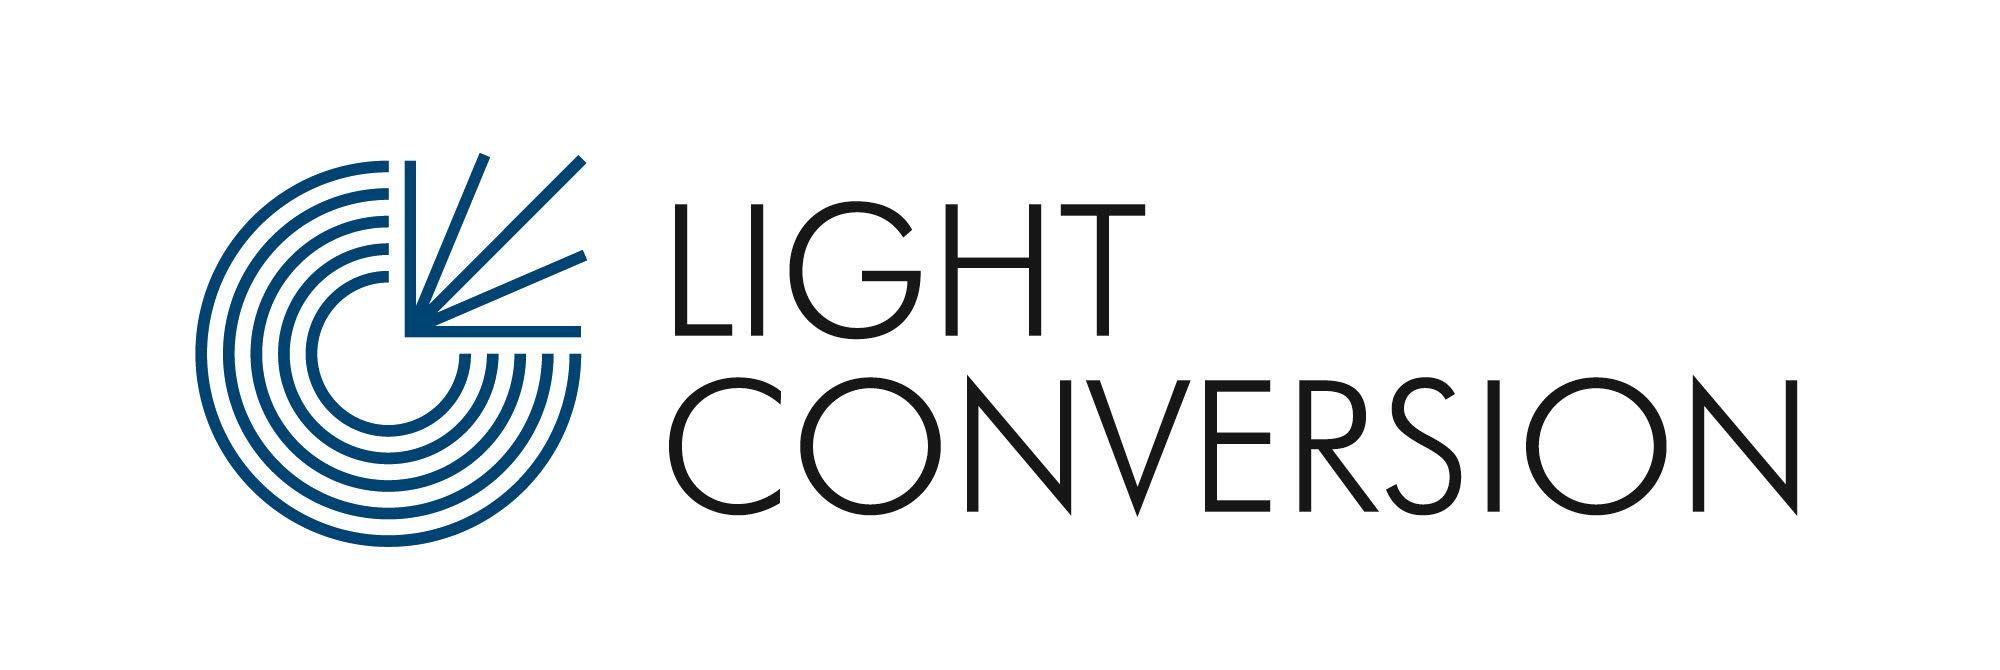 Supported by Light Conversion